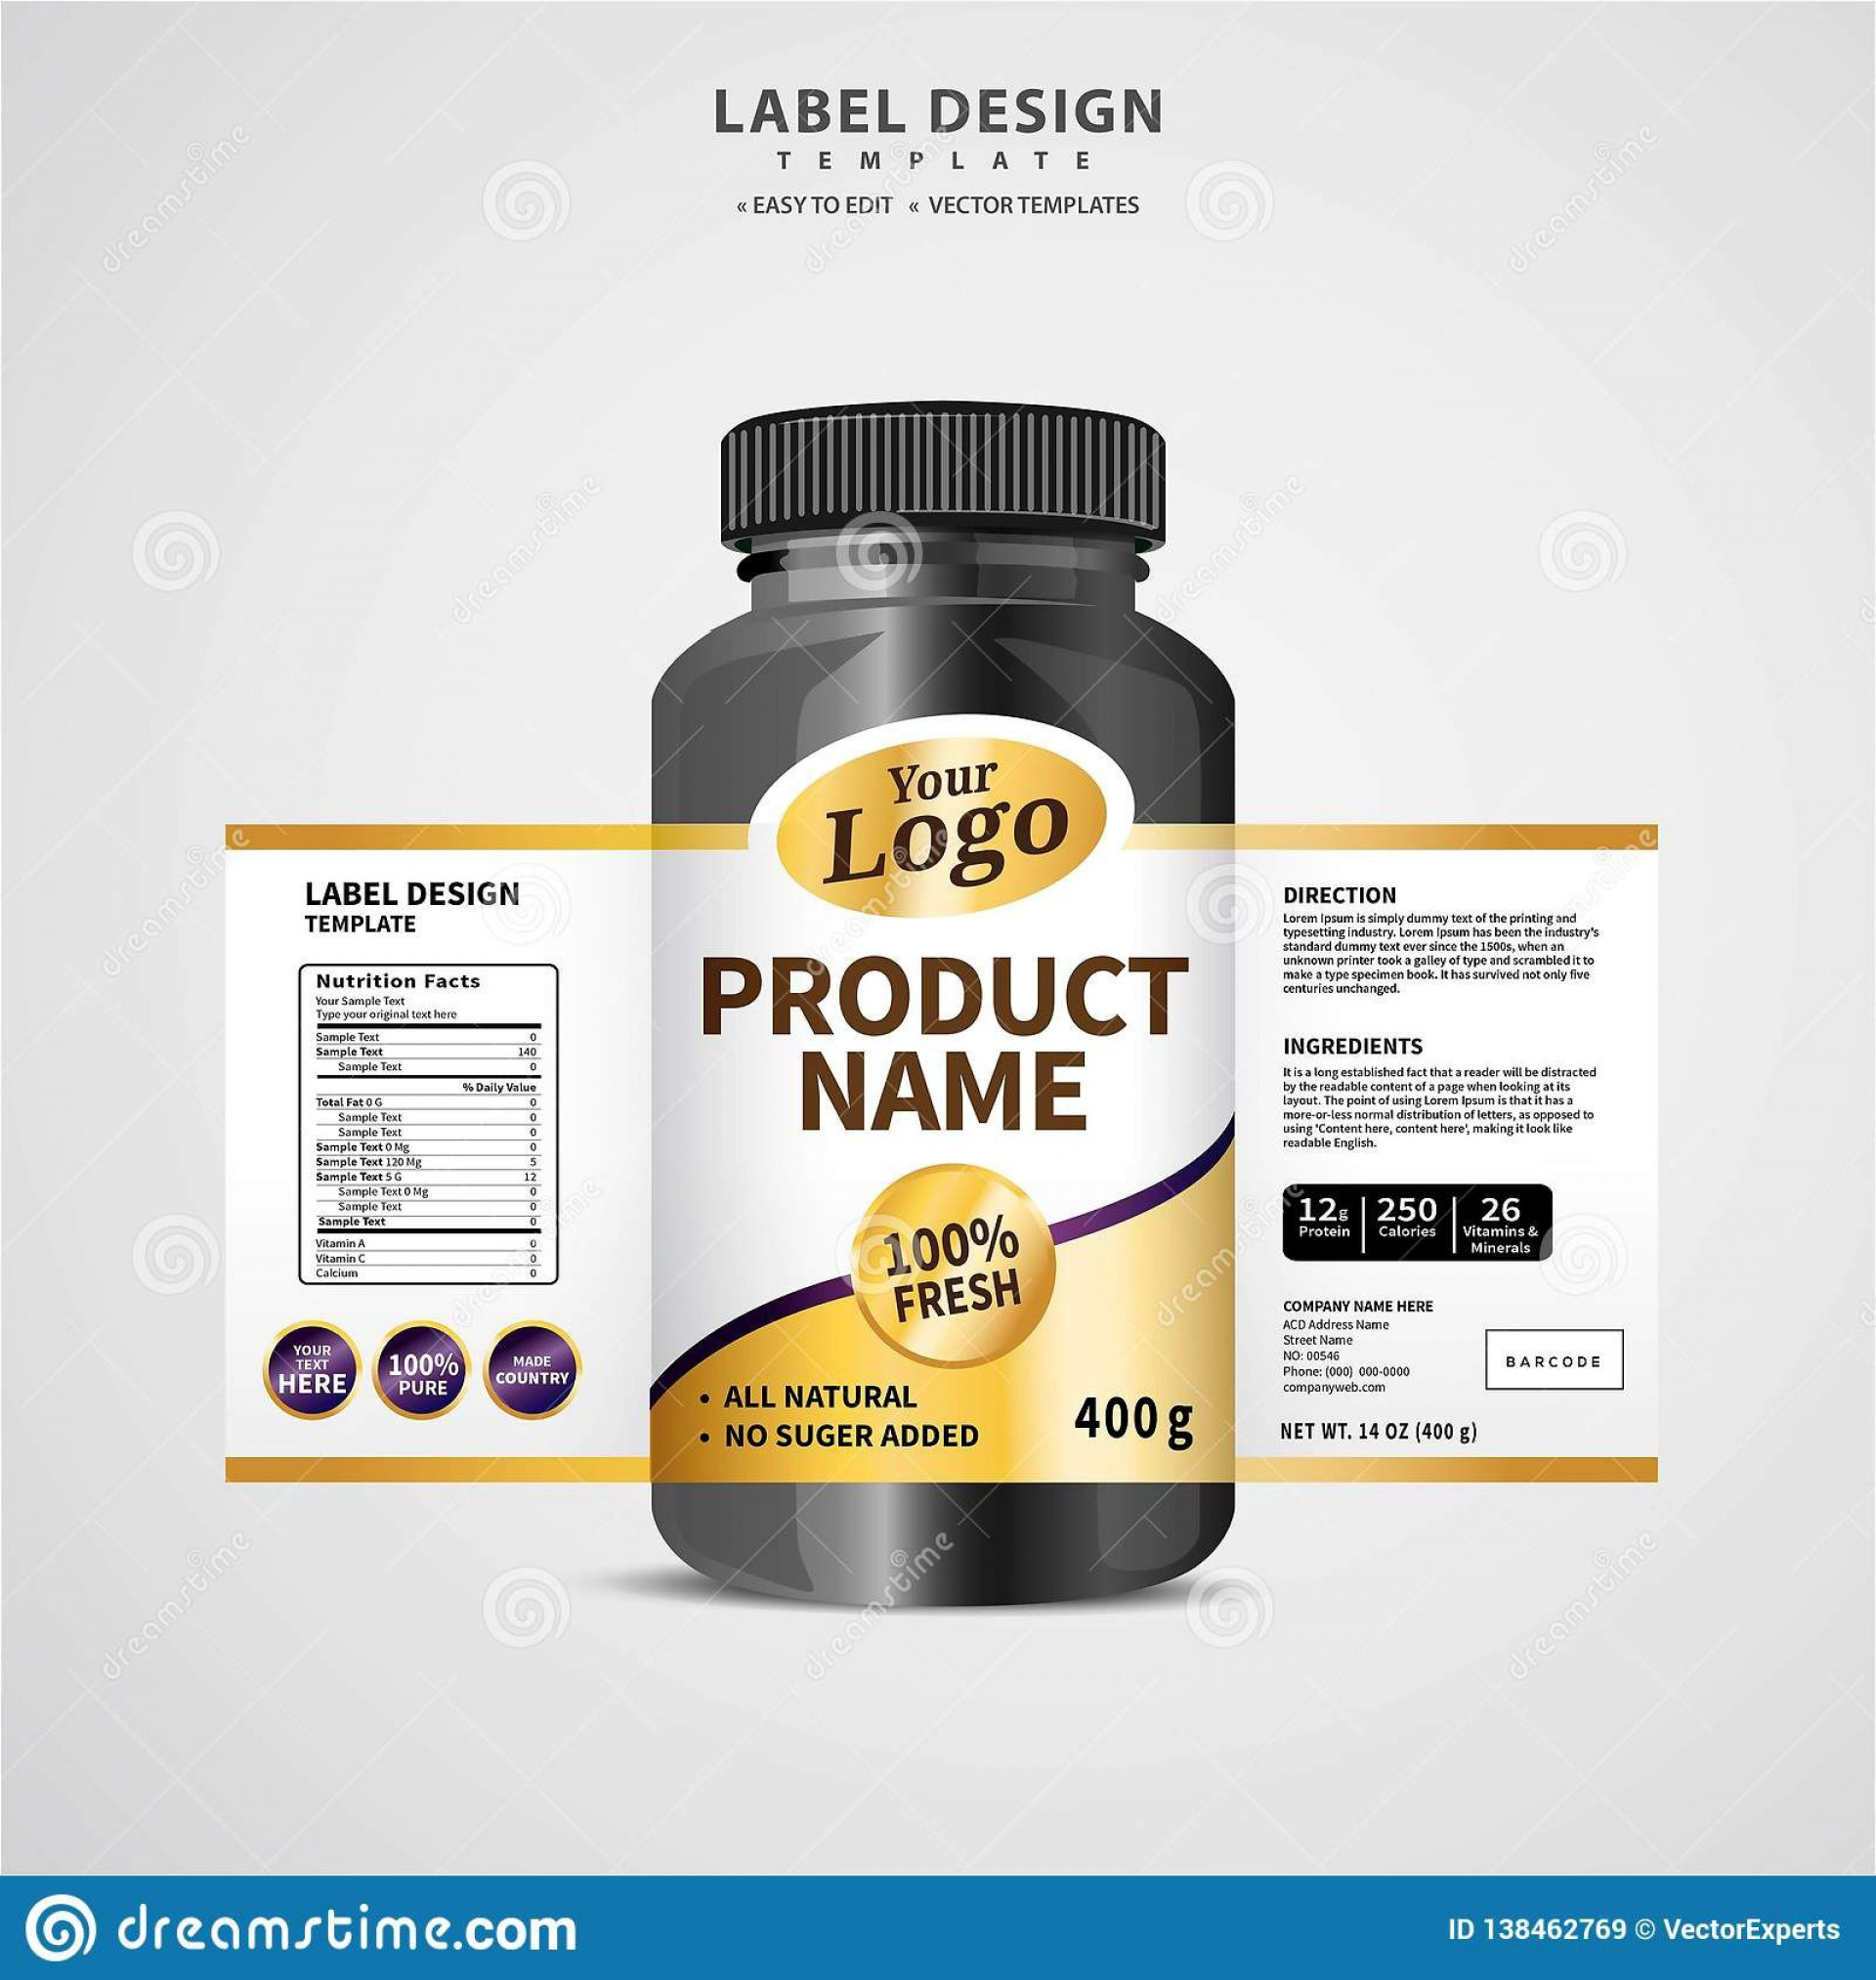 005 Unusual Free Food Label Design Template Example  Templates Download1920